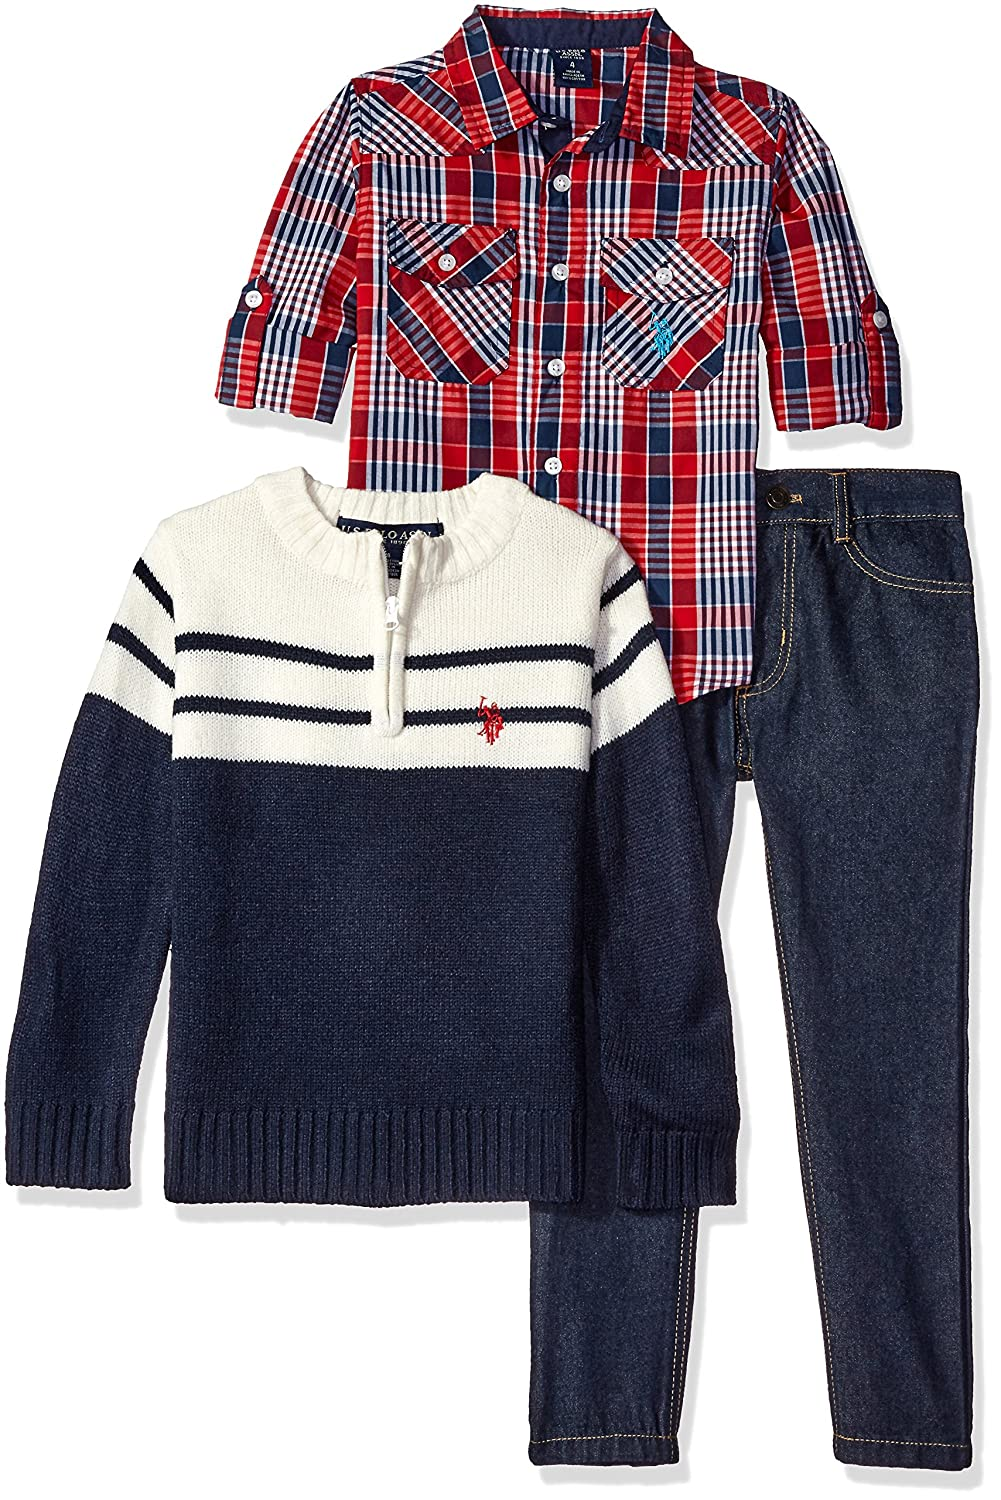 U.S. Polo Assn. Boys' Plaid Sport Shirt, 1/4 Zip Mock Neck Collar Color Blocked Sweater and Denim Jean 0011